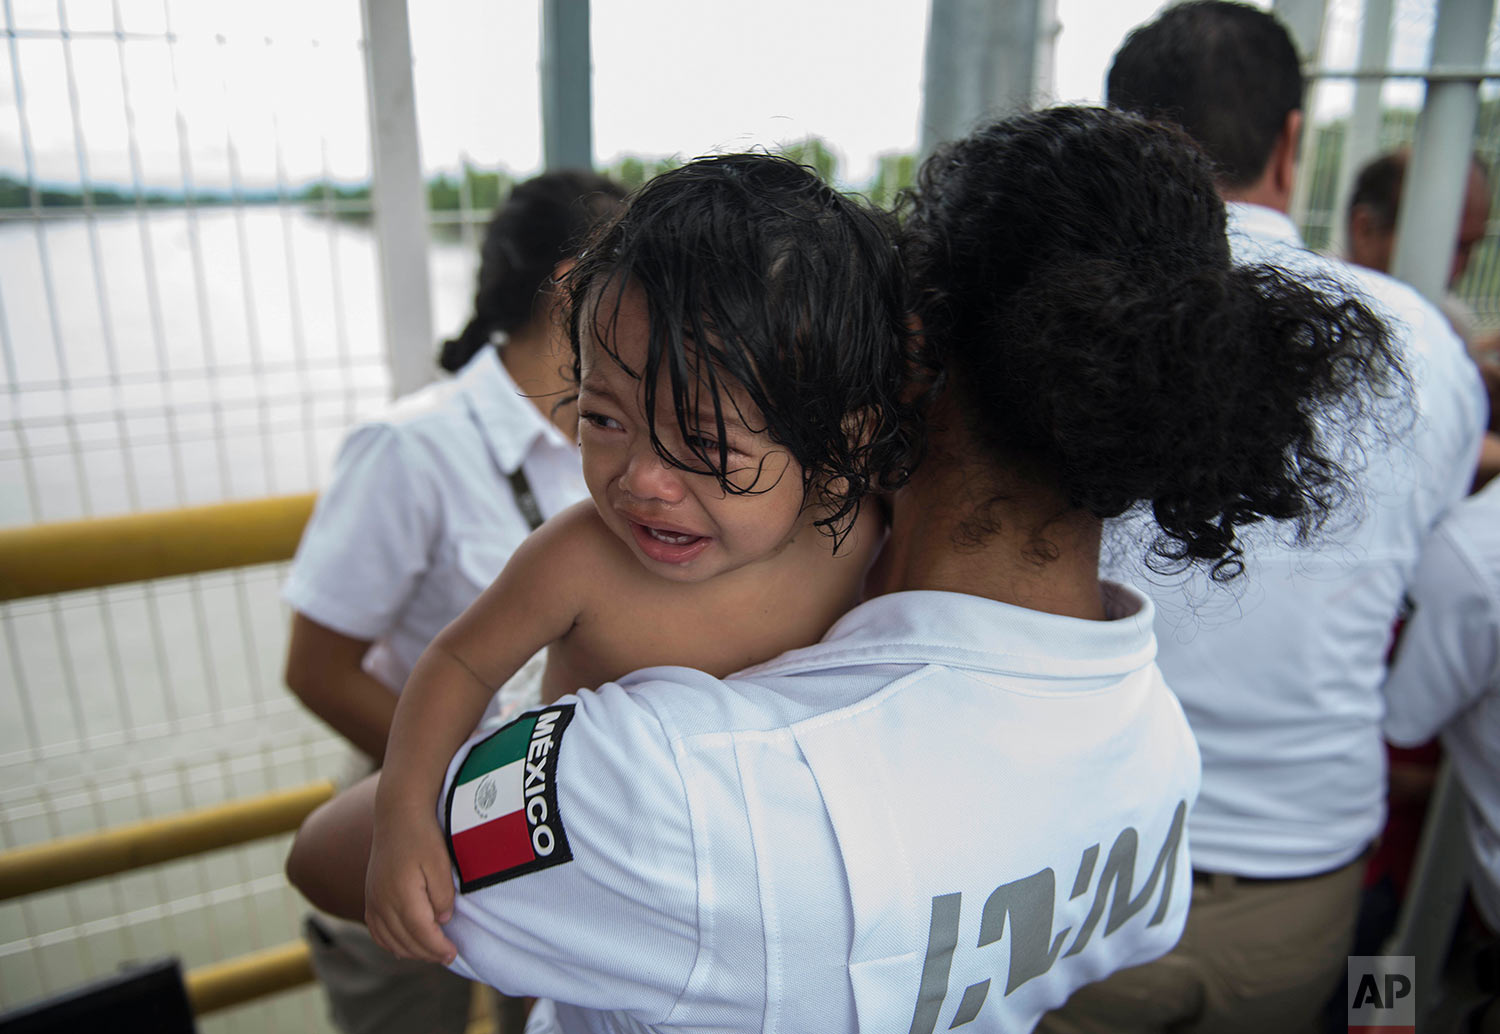 A Honduran migrant child held by a Mexican immigration worker, cries after crossing the border between Guatemala and Honduras with his family, in Ciudad Hidalgo, Mexico, Saturday, Oct. 20, 2018. (AP Photo/Oliver de Ros)